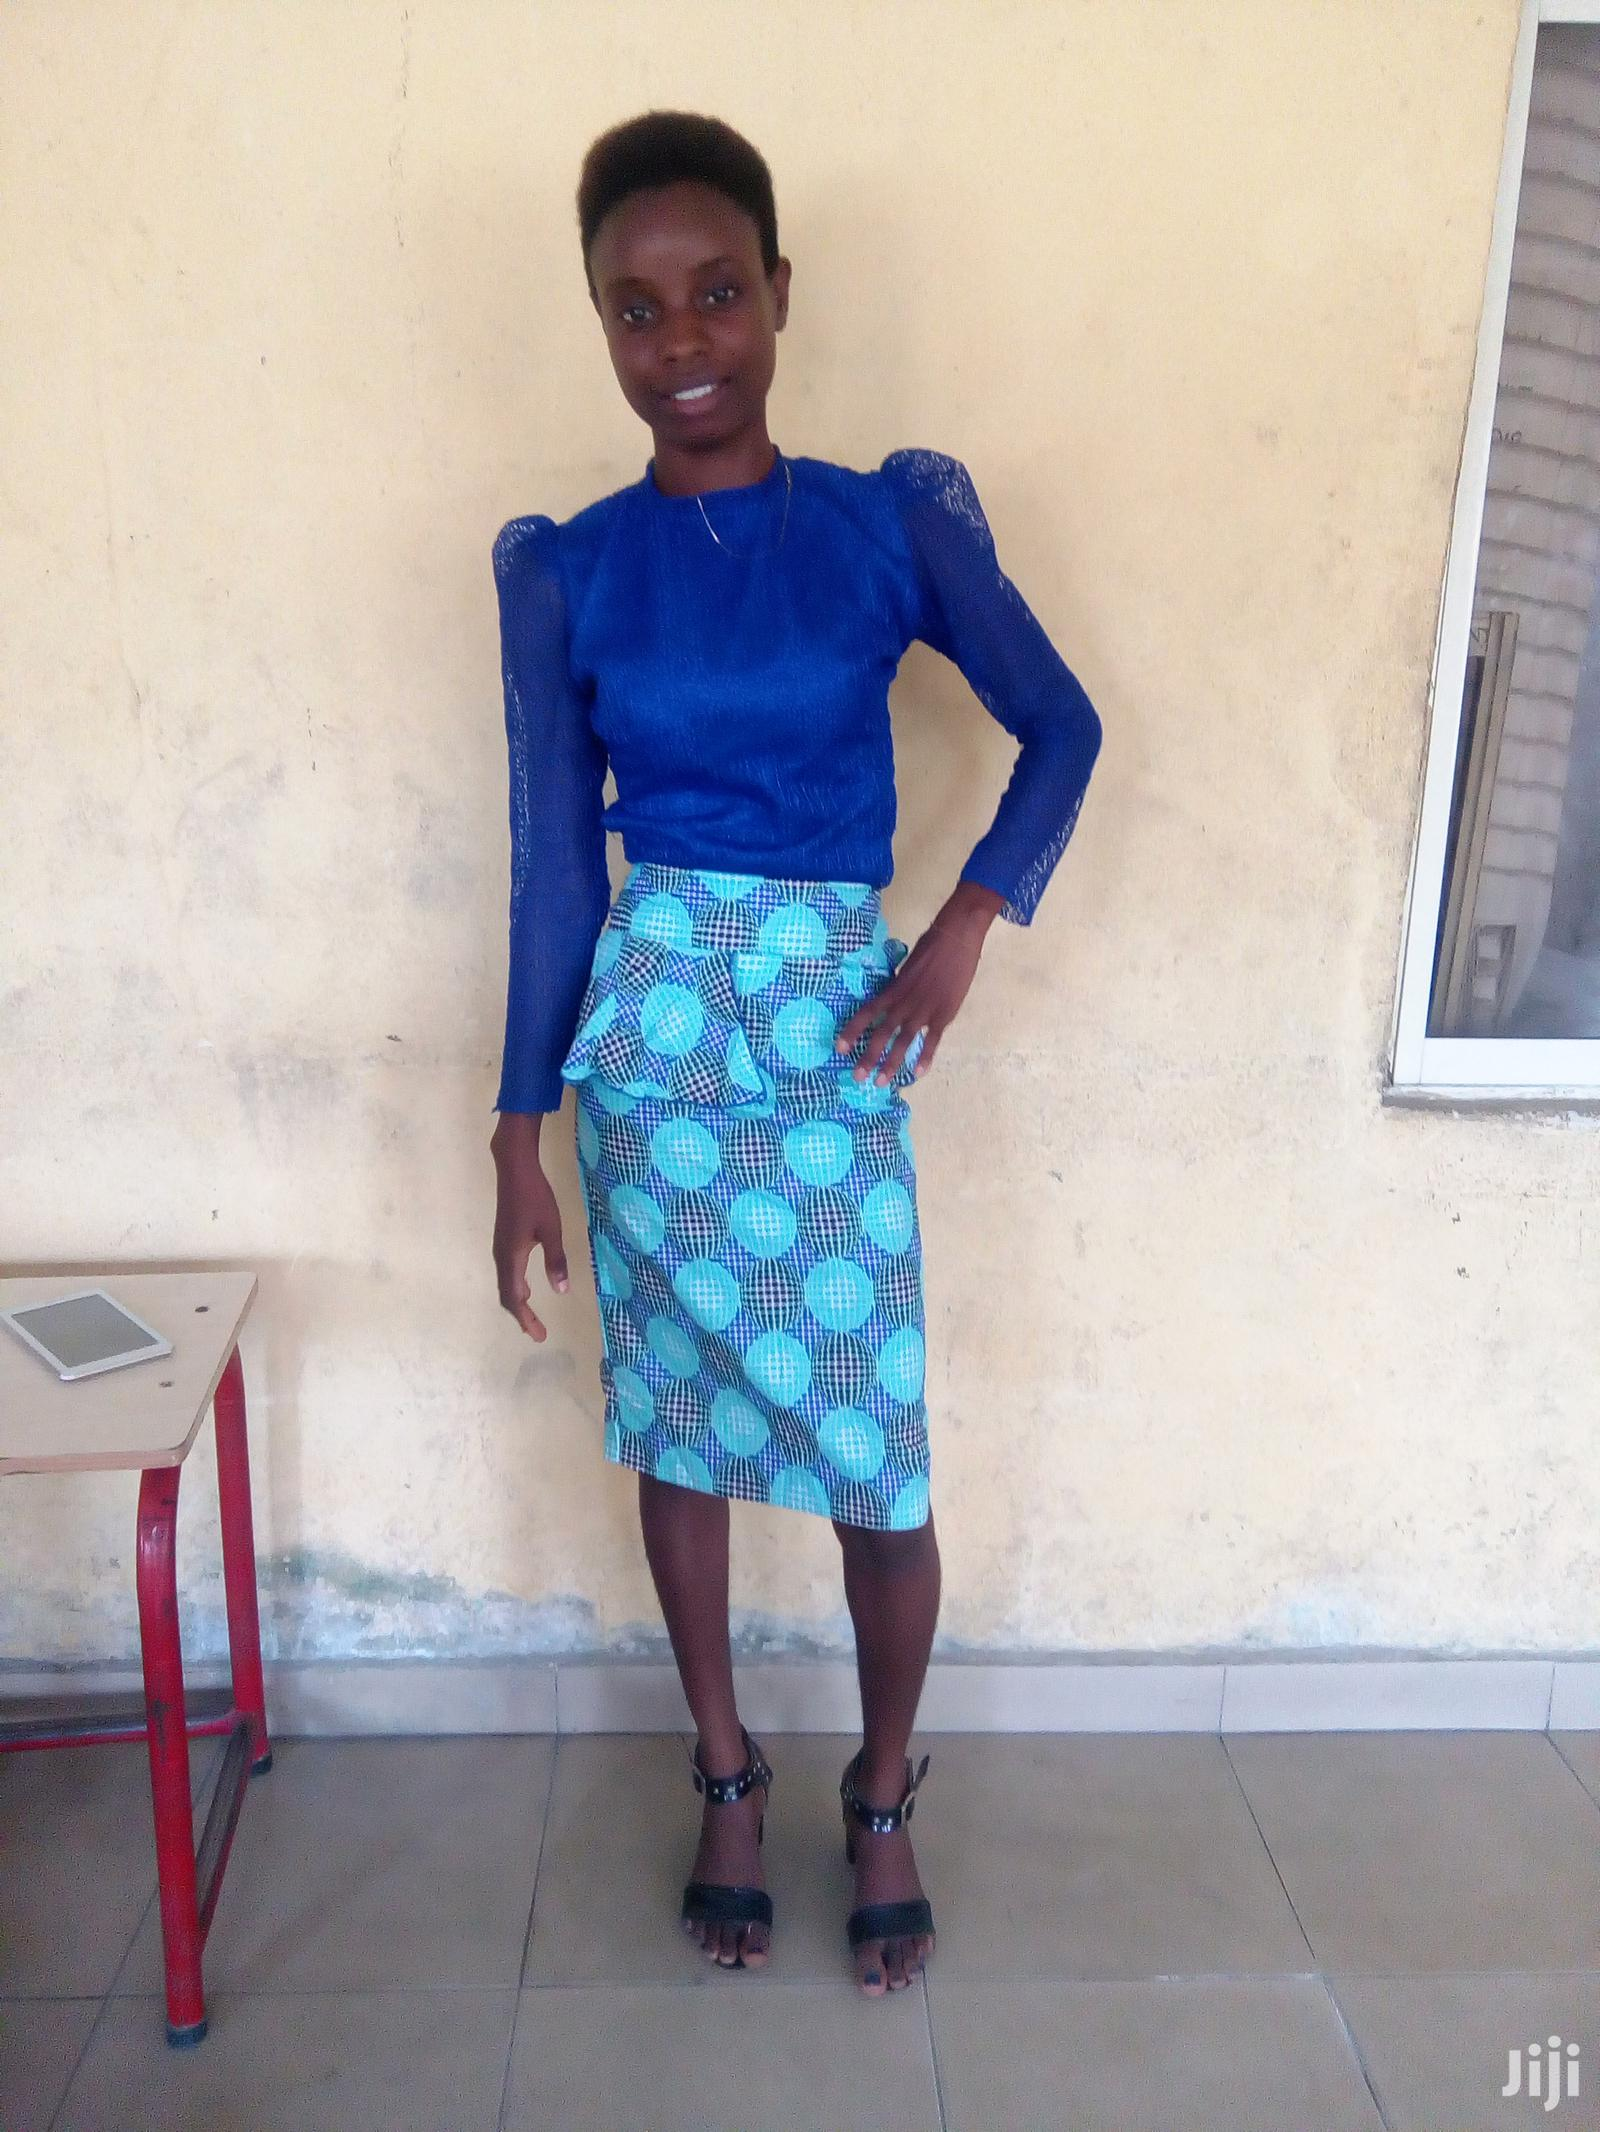 Housekeeping & Cleaning CV | Housekeeping & Cleaning CVs for sale in Port-Harcourt, Rivers State, Nigeria